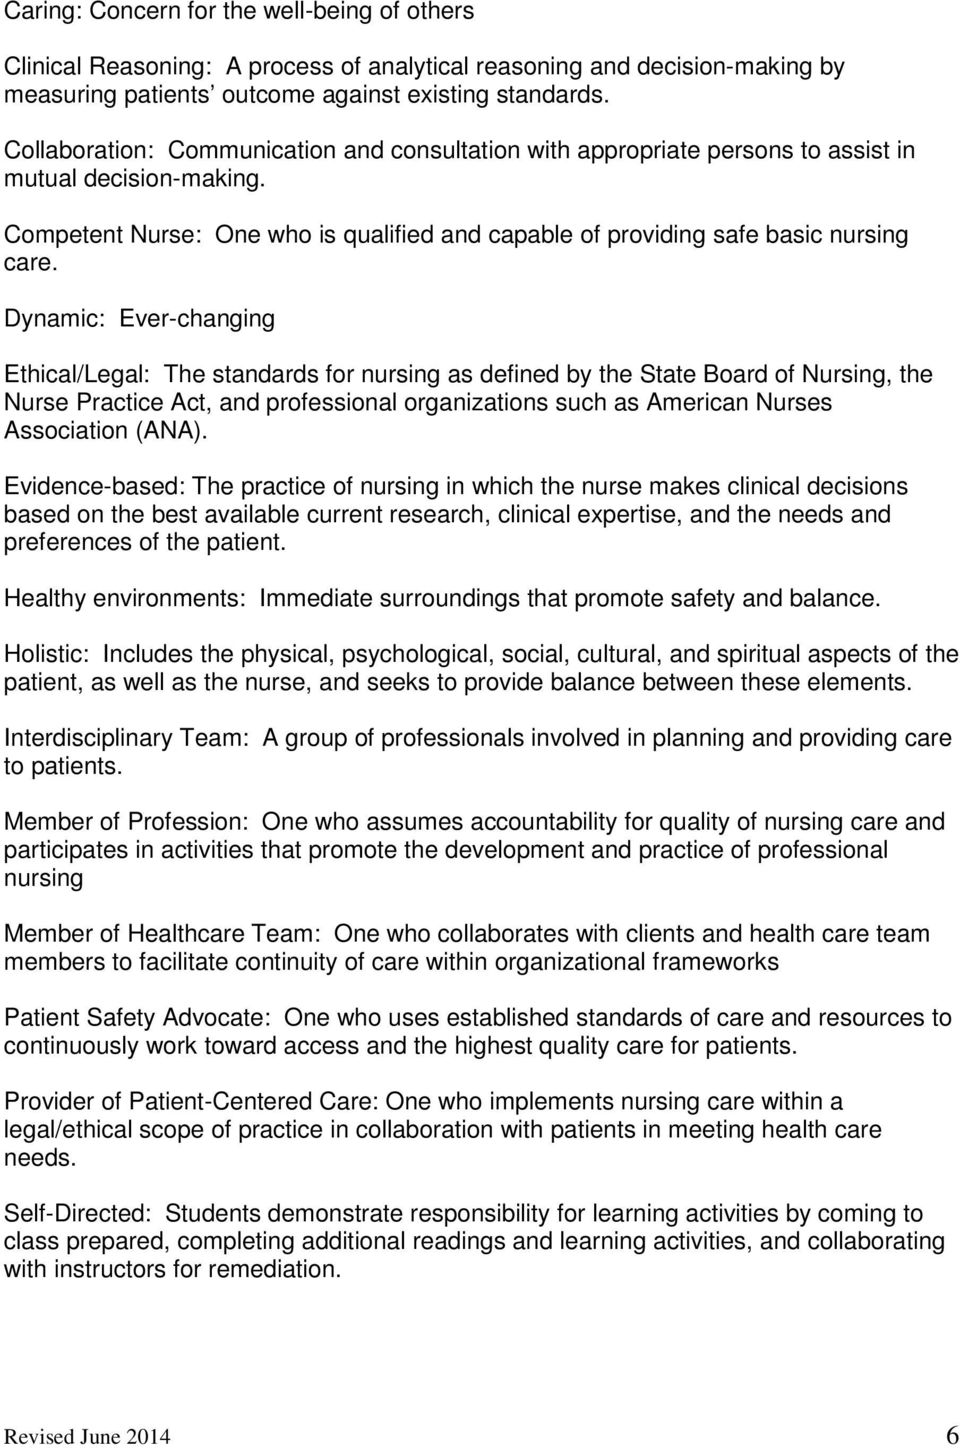 Dynamic: Ever-changing Ethical/Legal: The standards for nursing as defined by the State Board of Nursing, the Nurse Practice Act, and professional organizations such as American Nurses Association